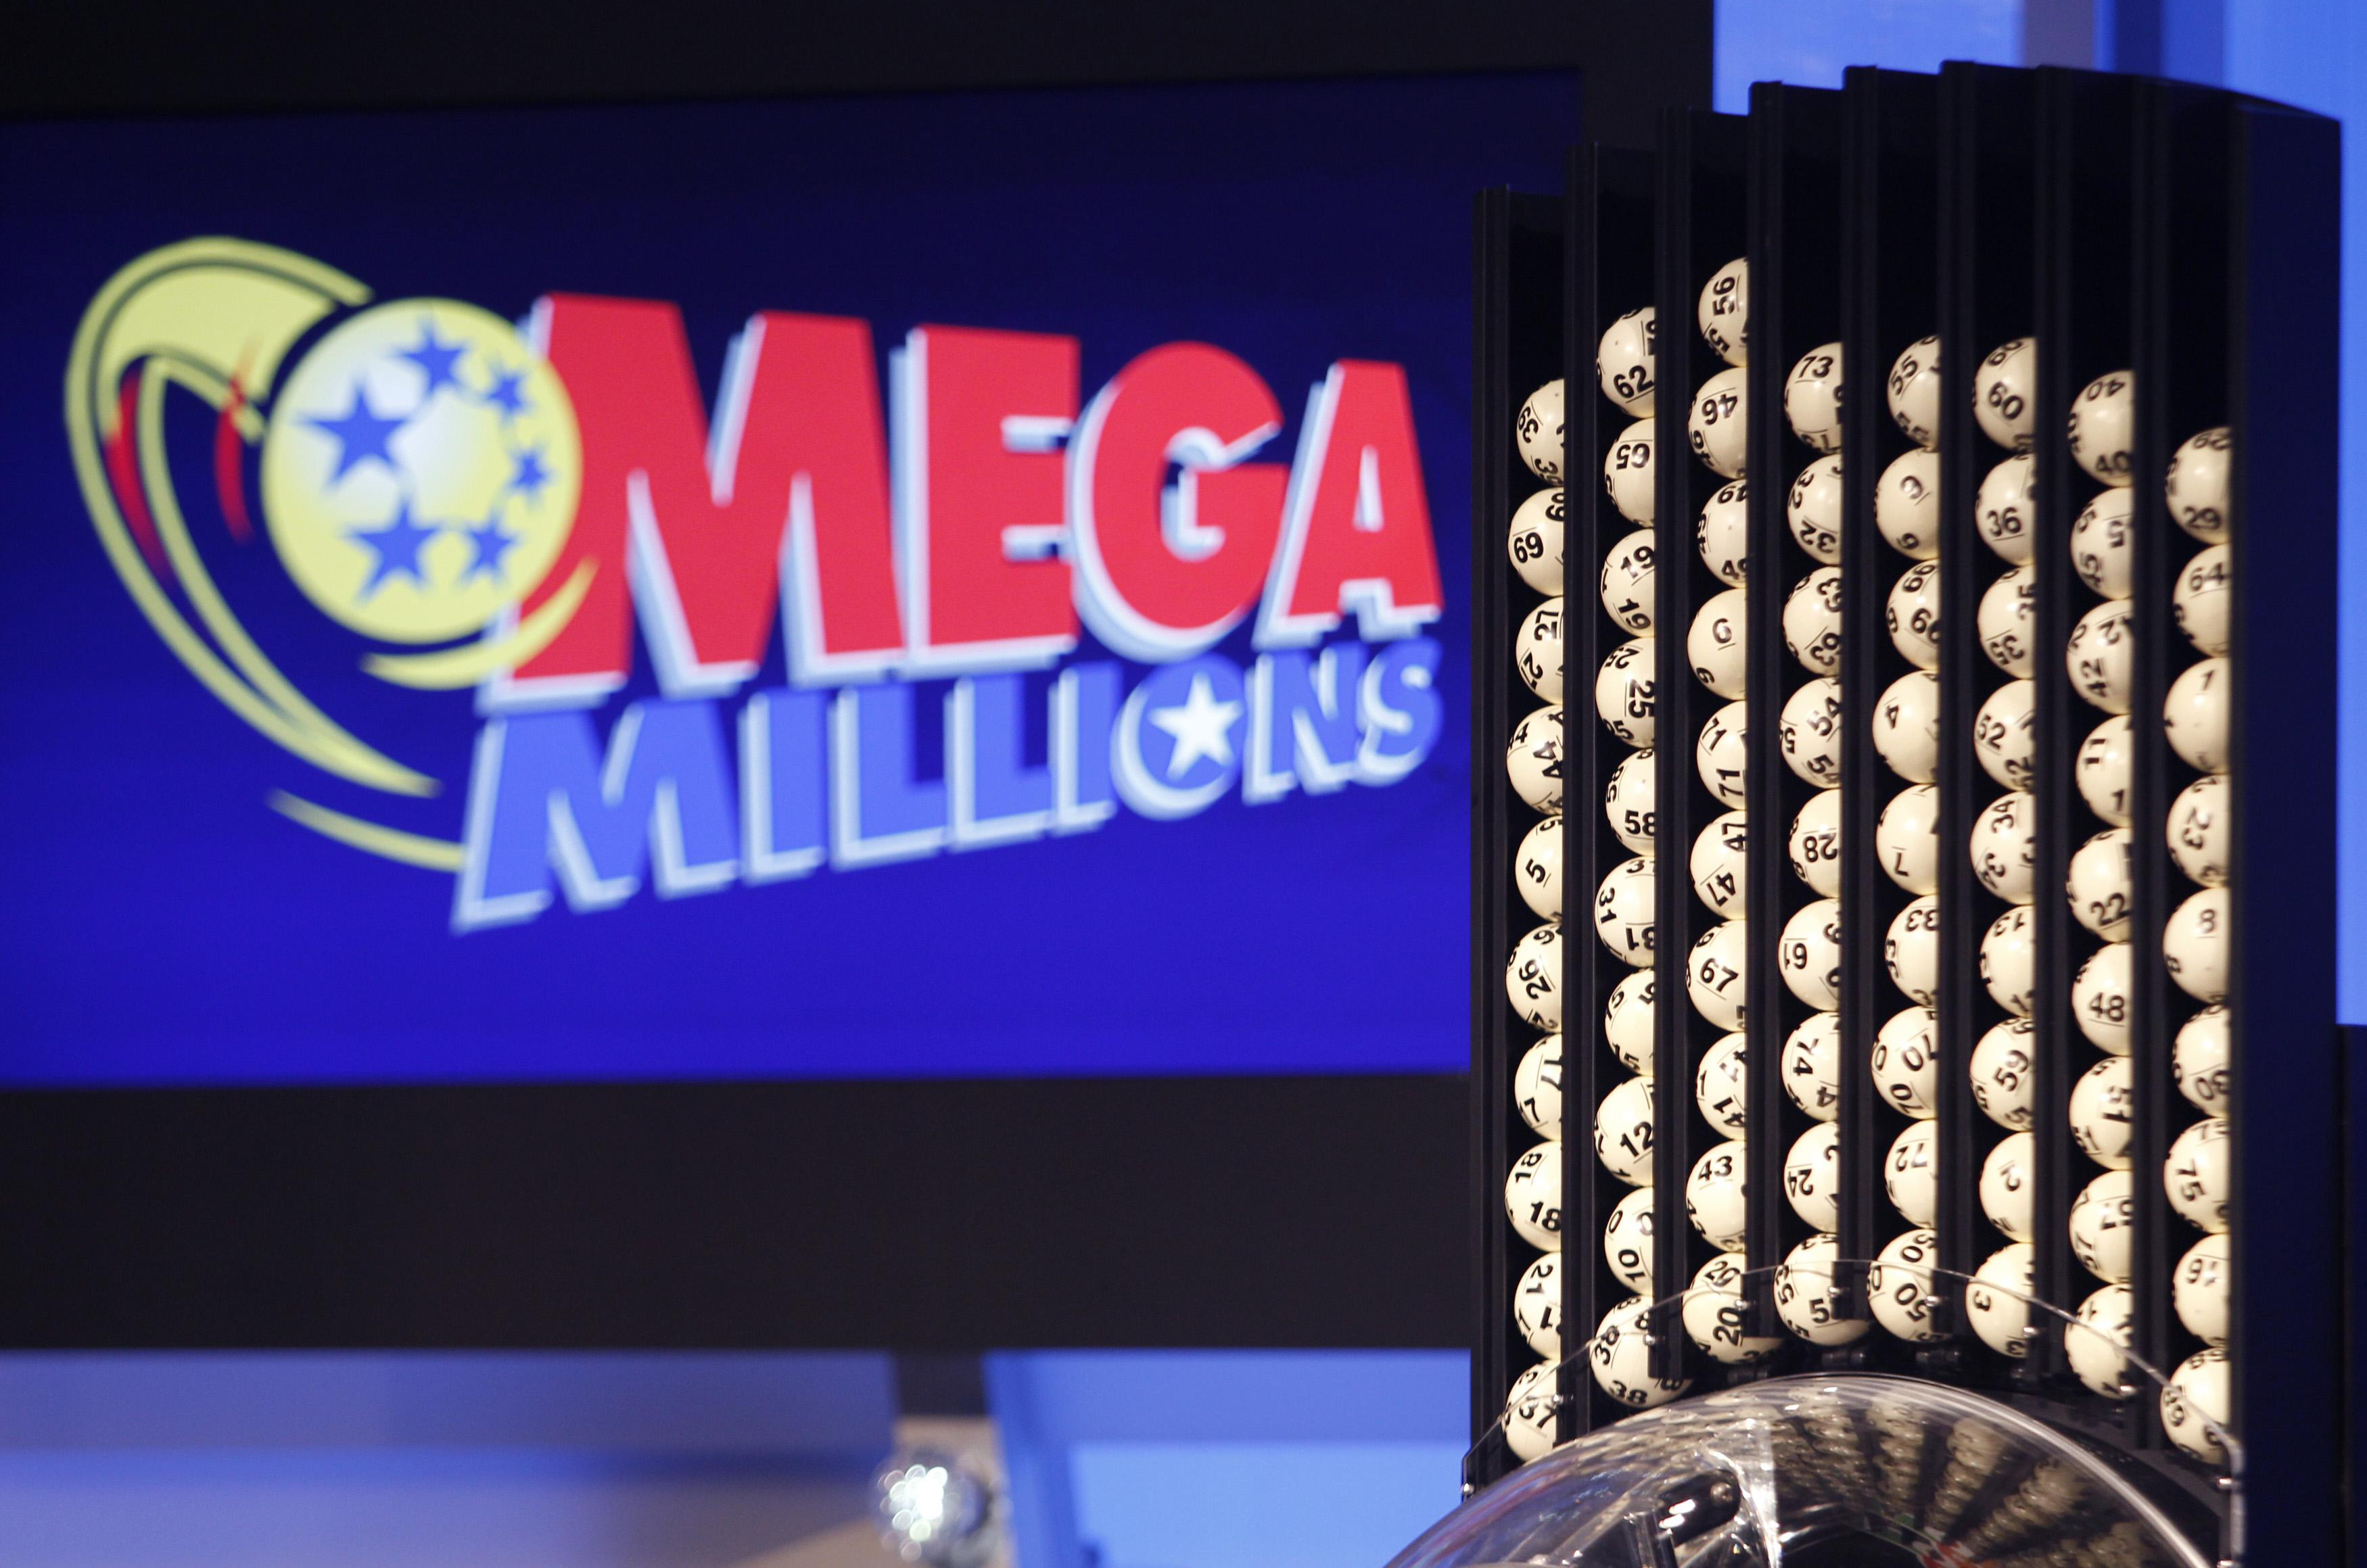 $458 million Mega Millions jackpot drawing tonight